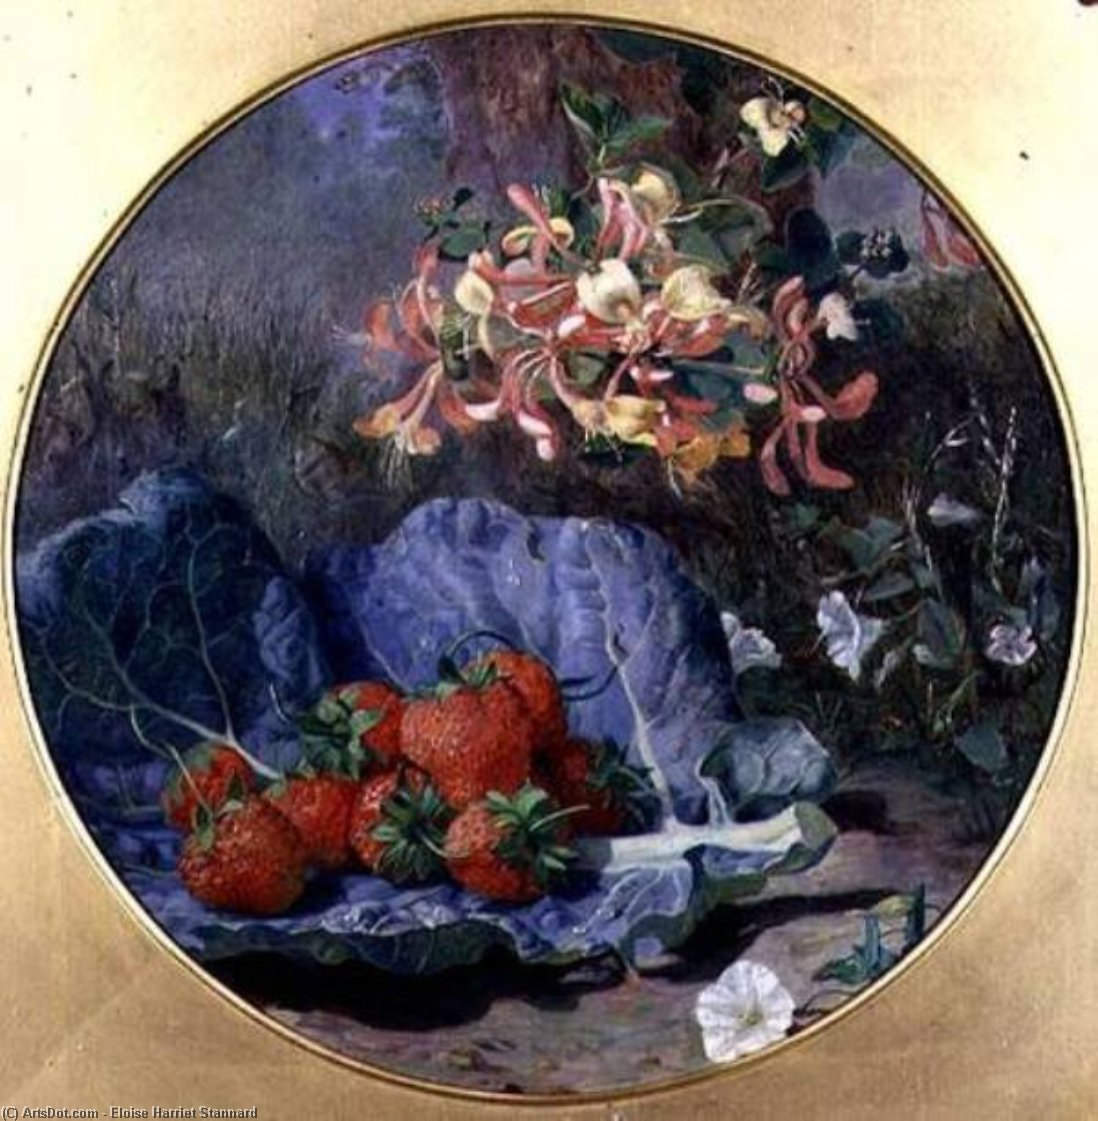 Wikioo.org - The Encyclopedia of Fine Arts - Painting, Artwork by Eloise Harriet Stannard - Strawberries